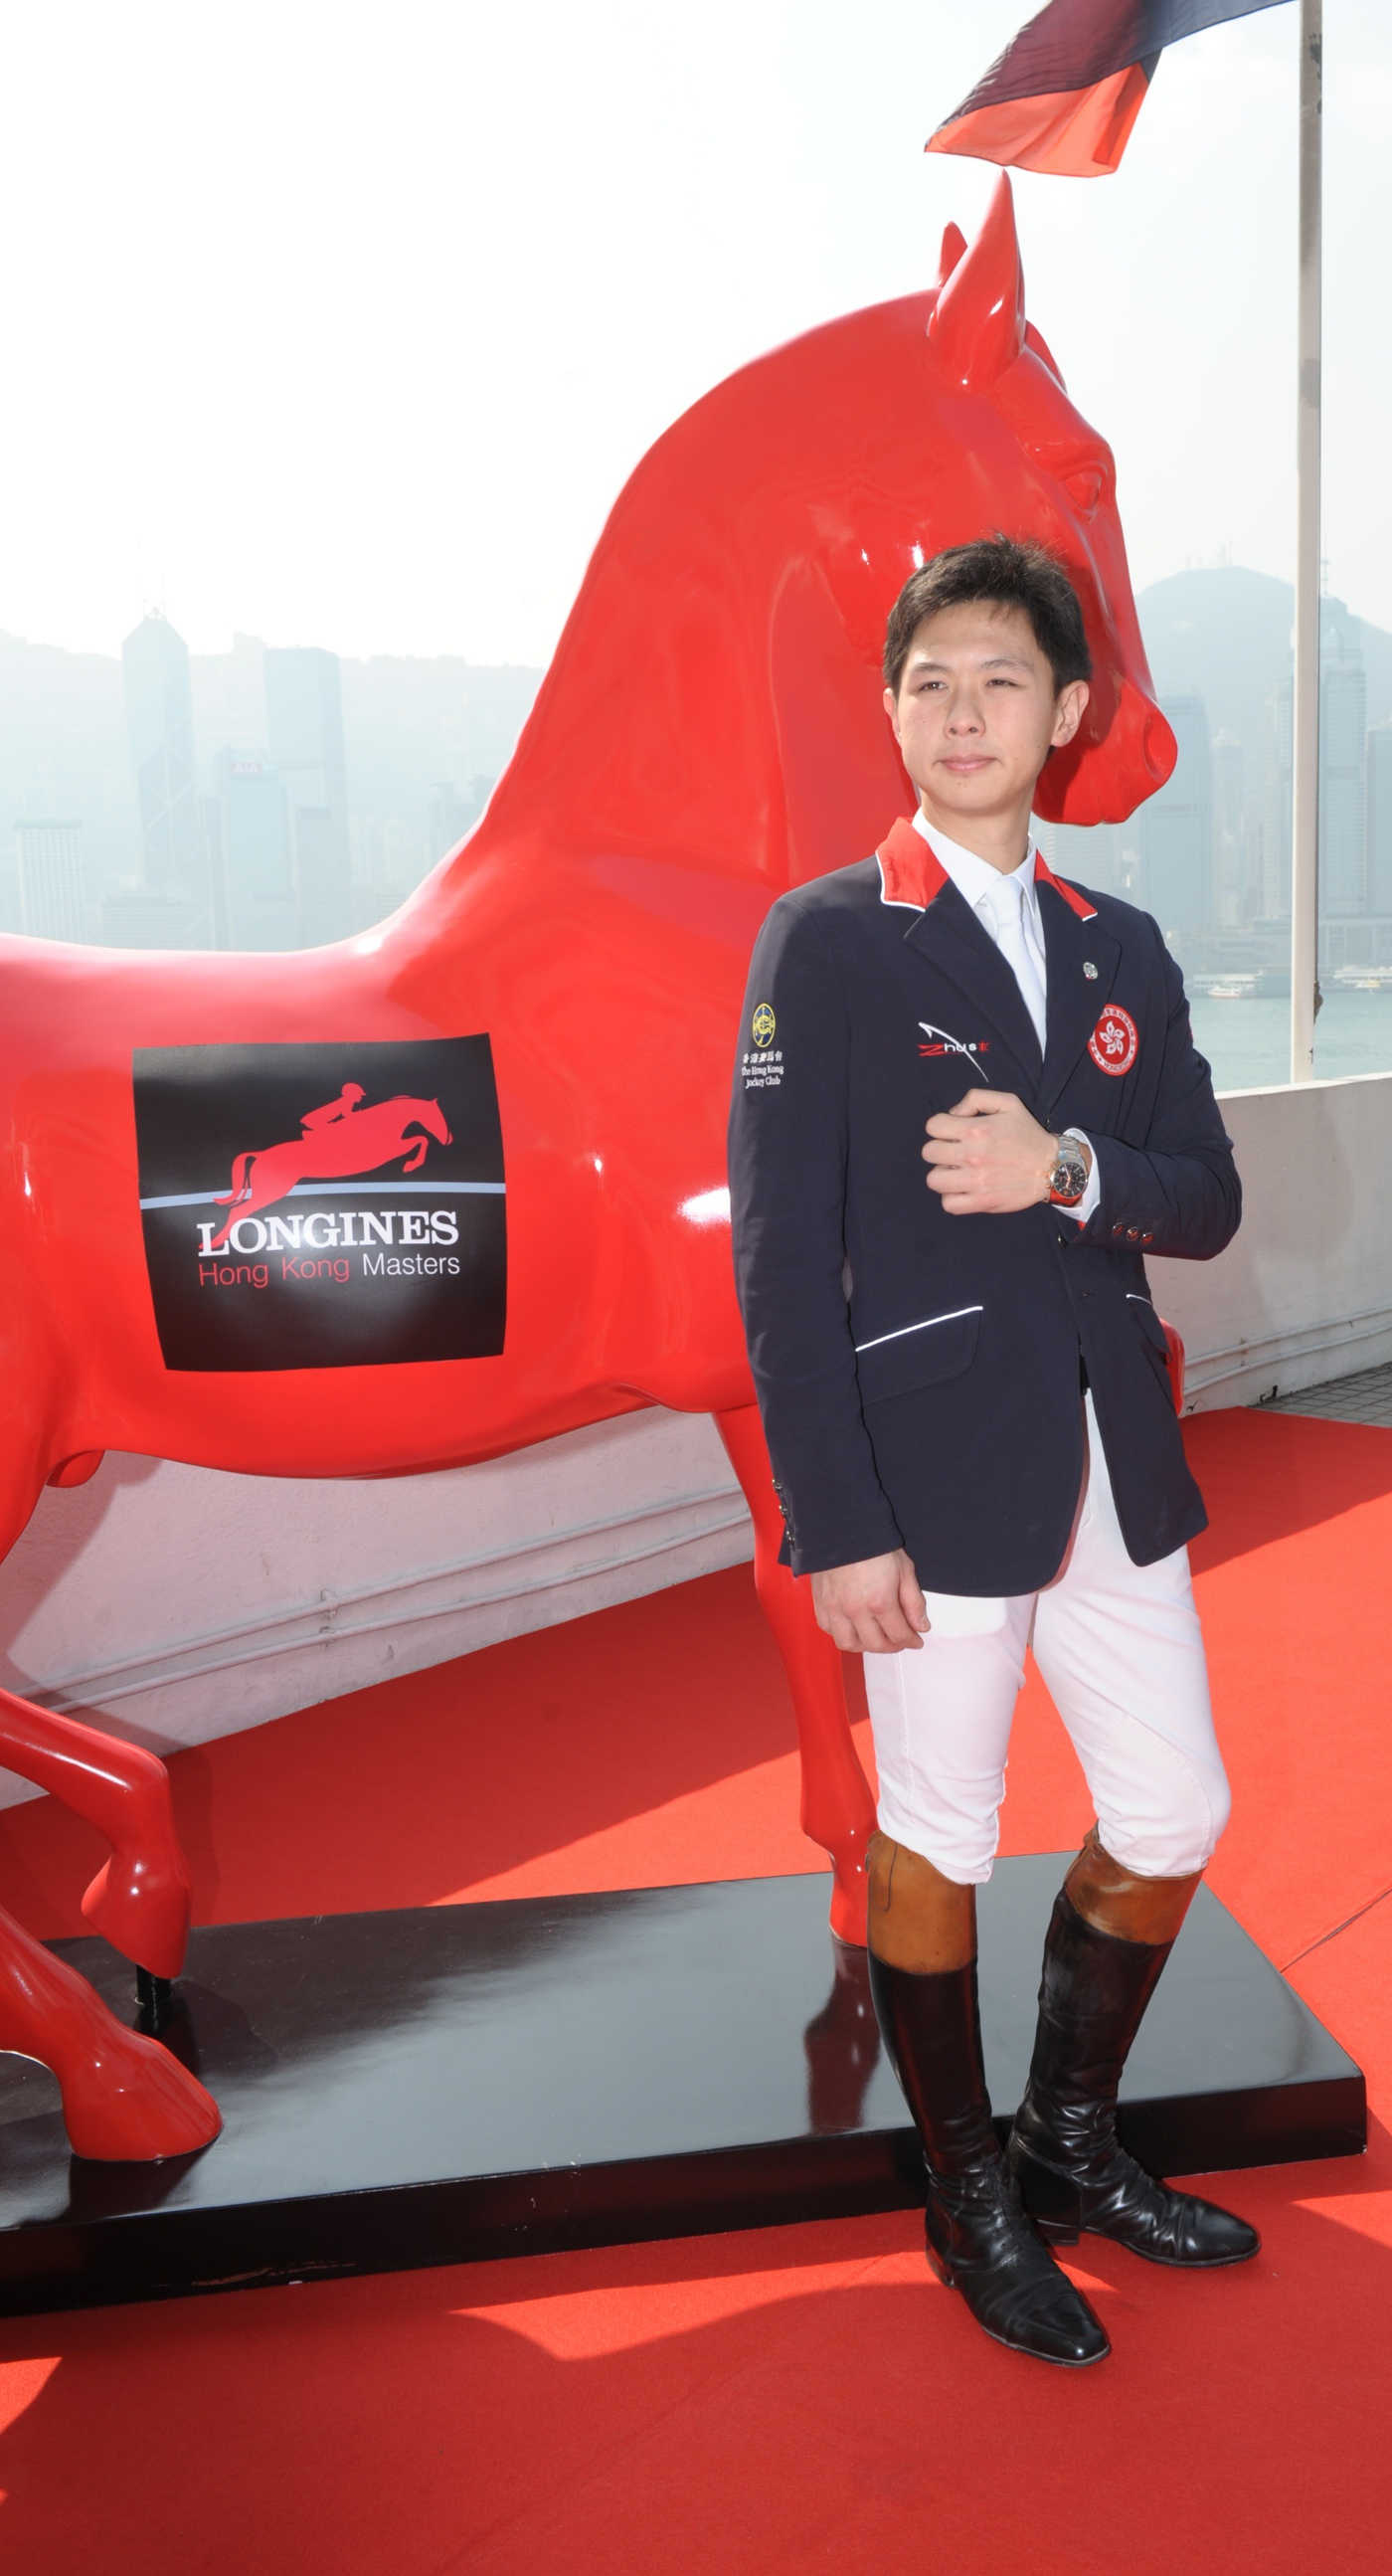 Longines Show Jumping Event: Longines Hong Kong Masters 2013 – A promising event 7